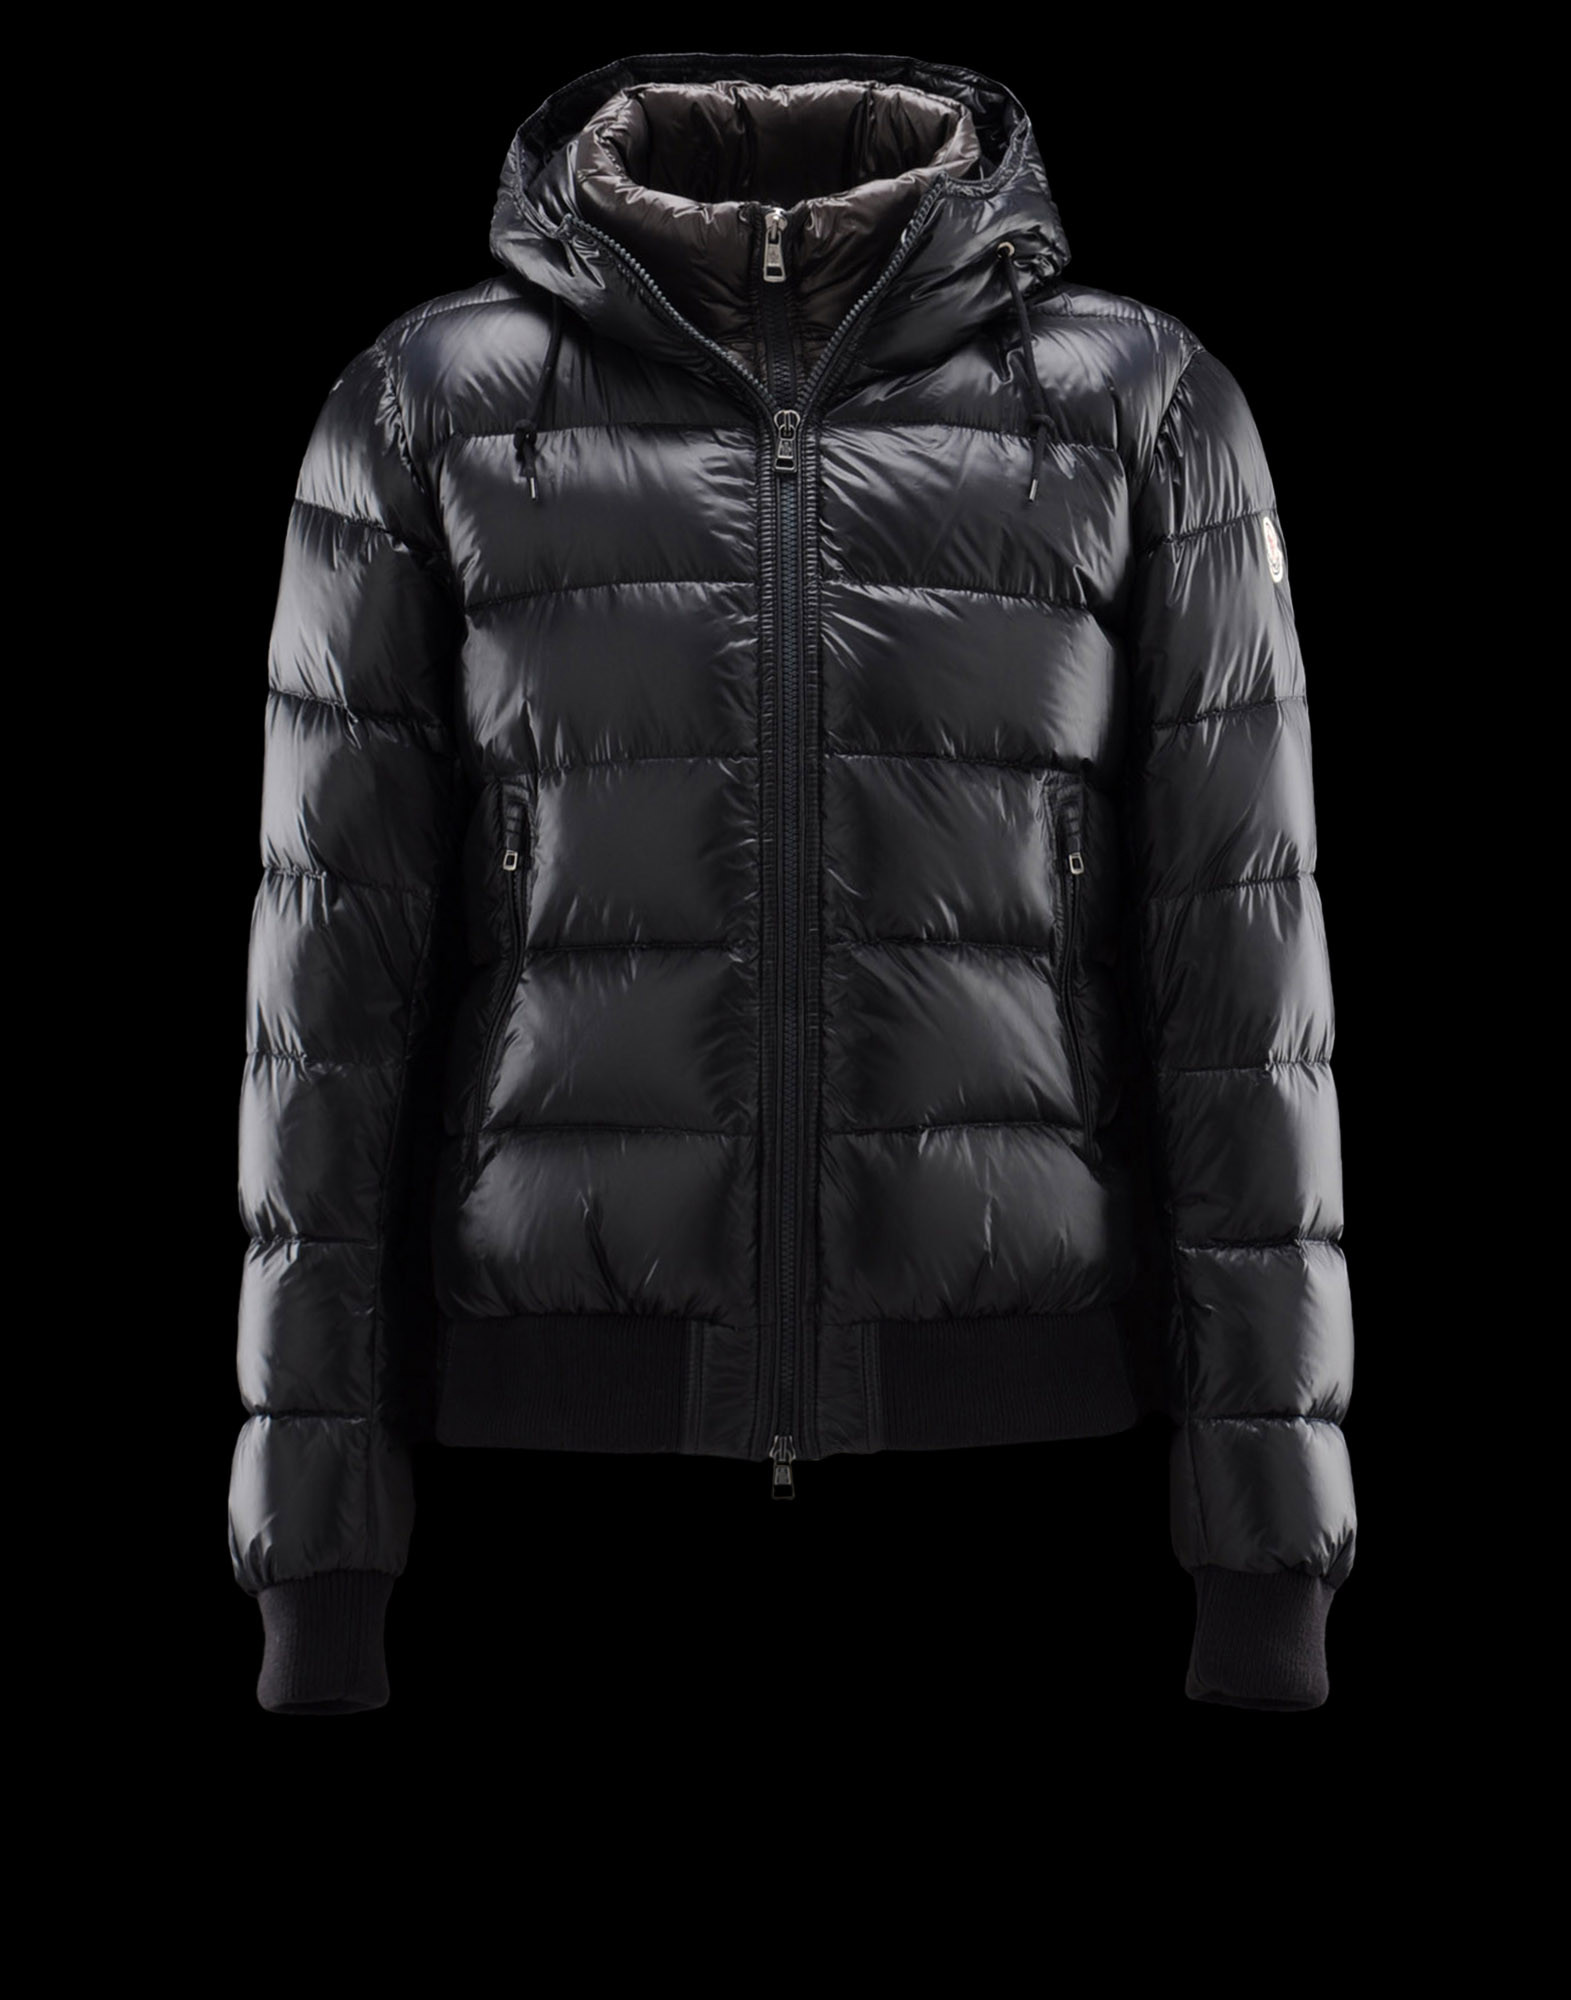 825362 Moncler Outlet Orlando Moncler Store Moncler Jacket For Women  - Sale